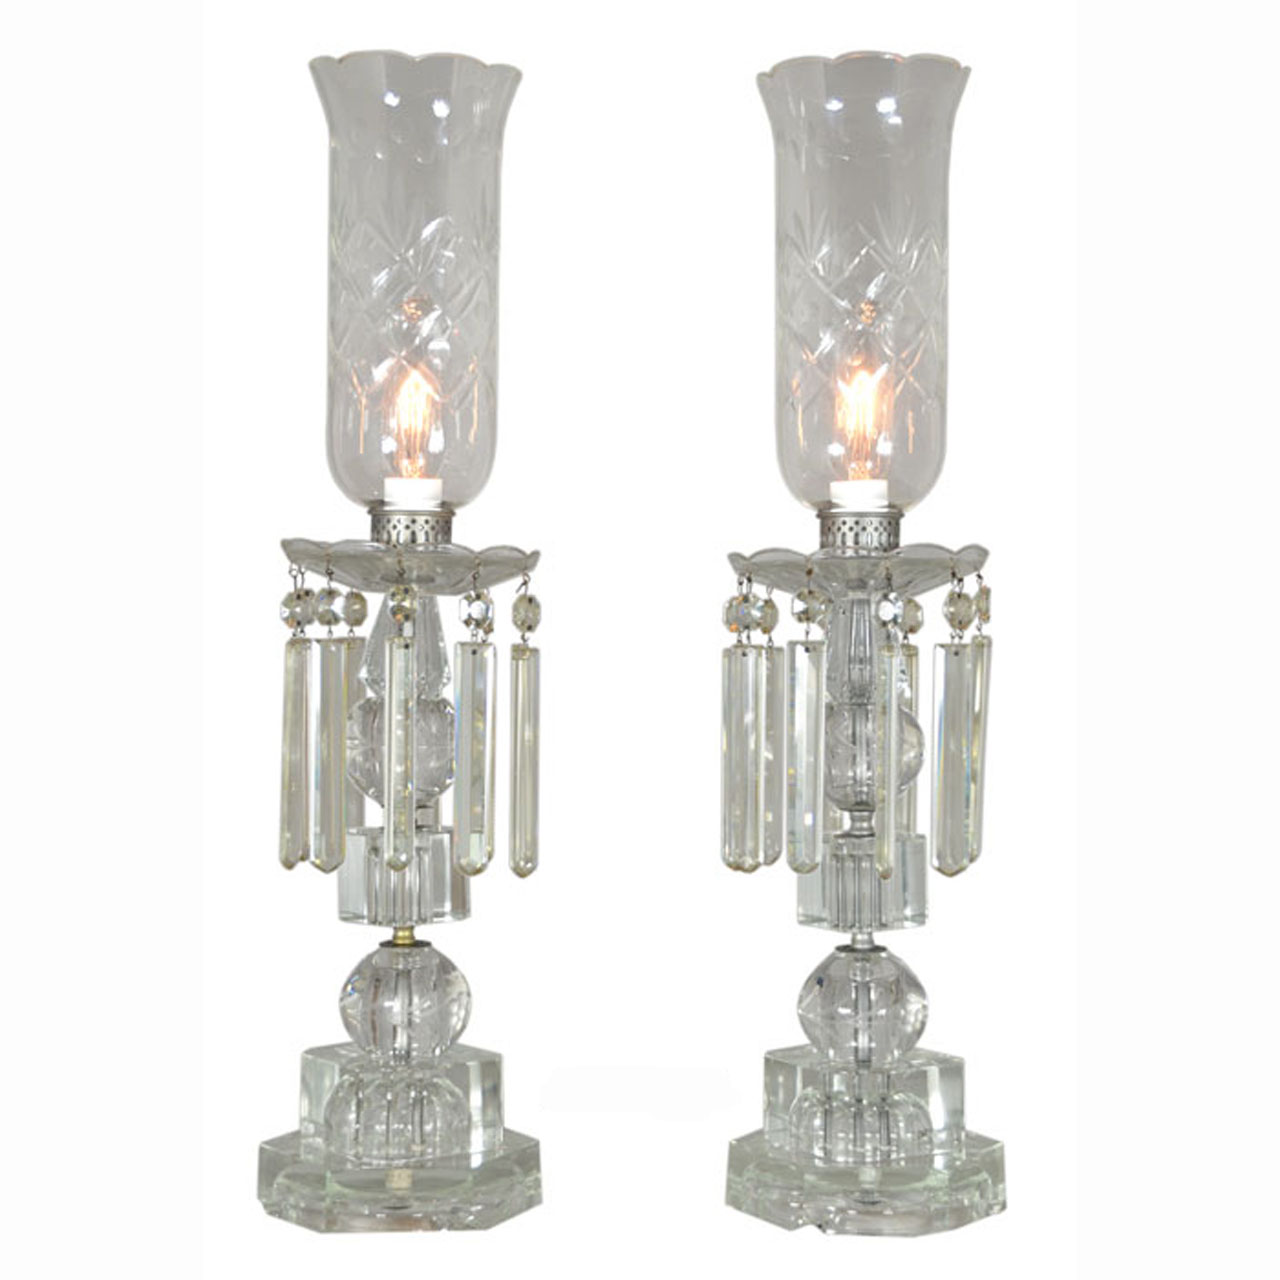 Outstanding pair of period edwardian cut crystal hurricane table outstanding pair of period edwardian cut crystal hurricane table lamps ant 380 for sale aloadofball Images